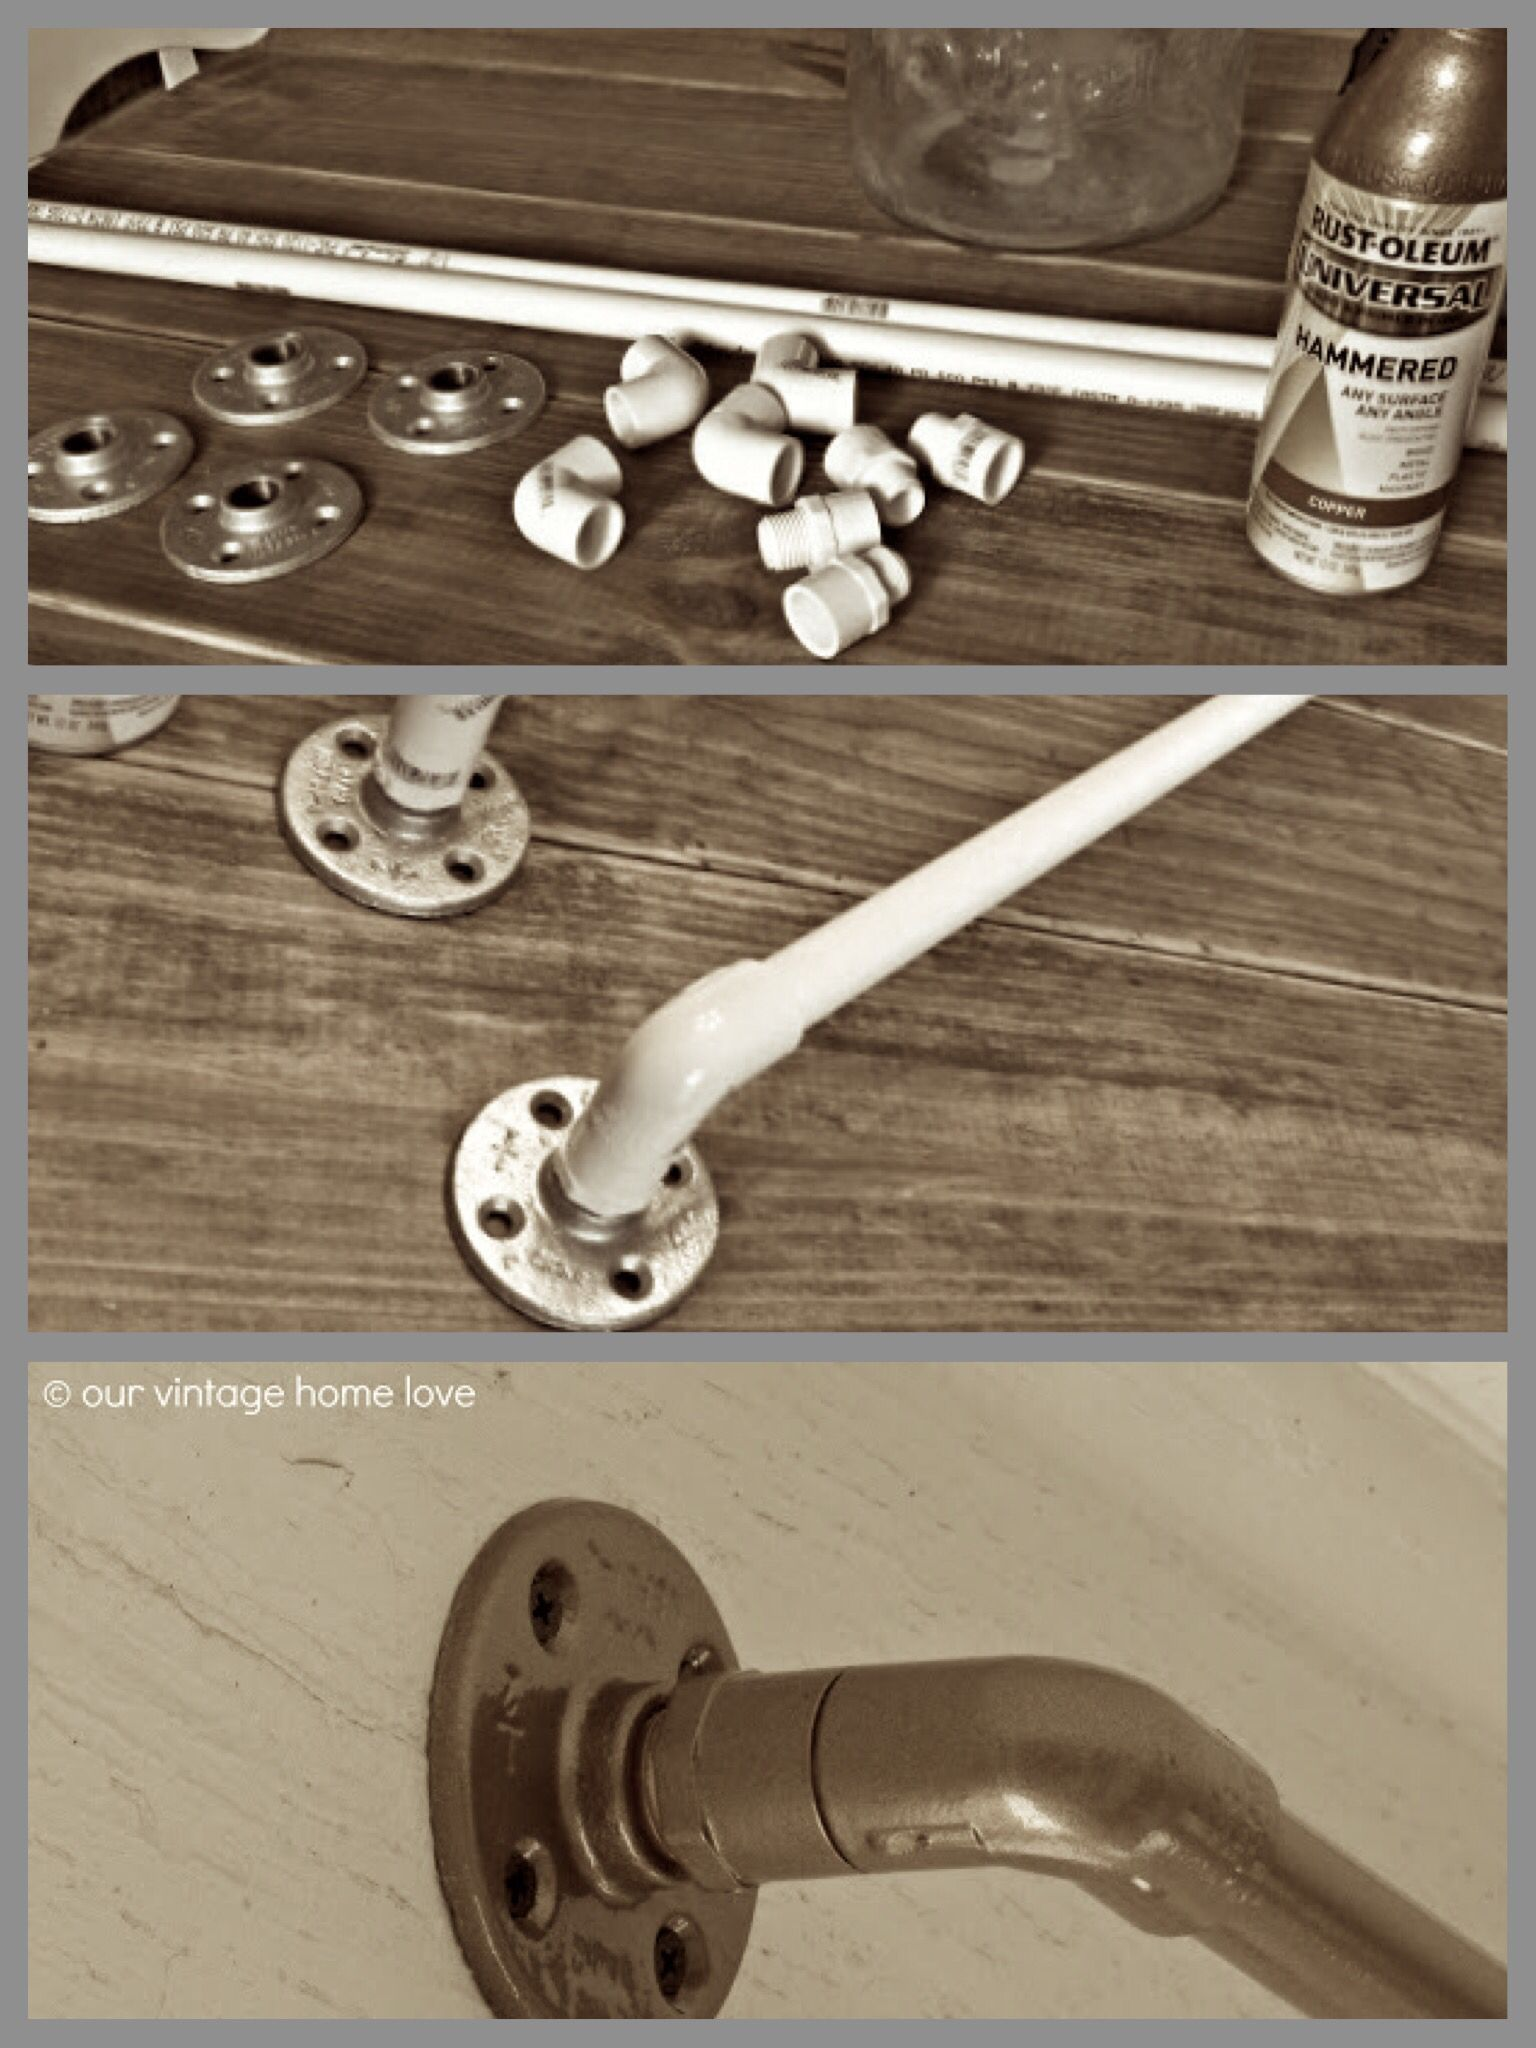 Industrial Curtain Rod Diy From Pvc Conduit Fittings And